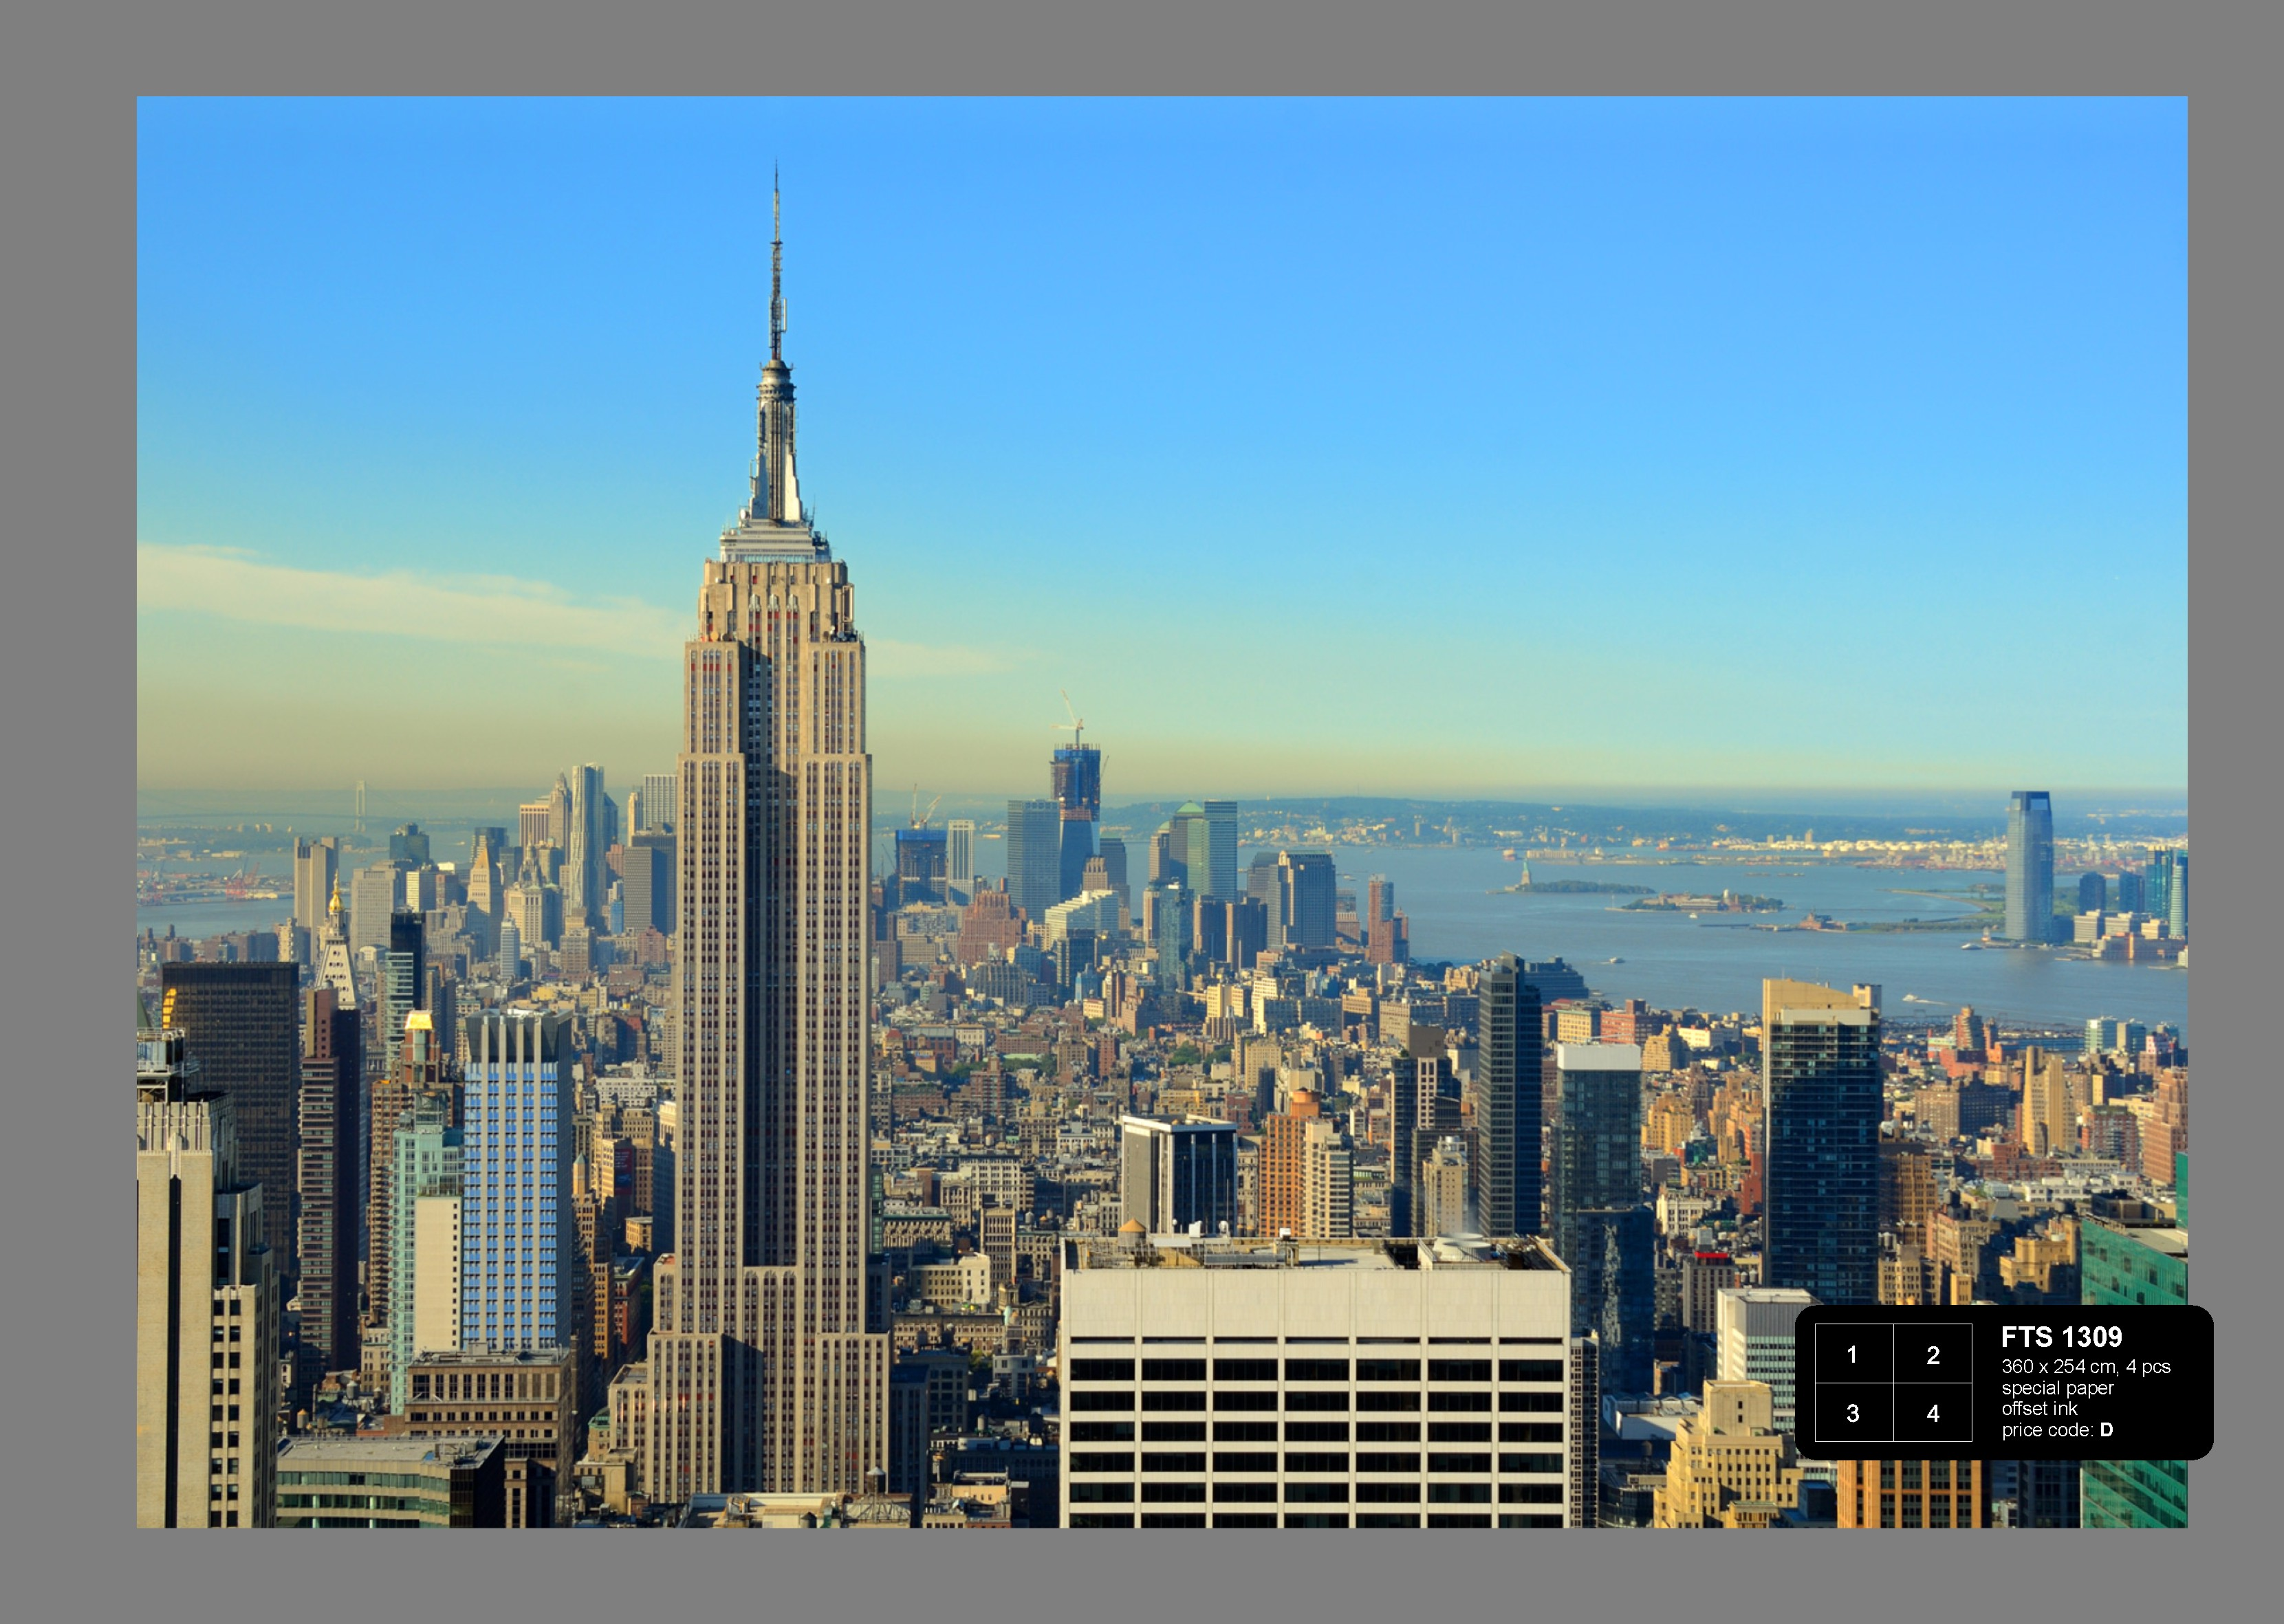 Foto Behang New York.Foto Behang Manhattan New York Fts1309 Behanggigant